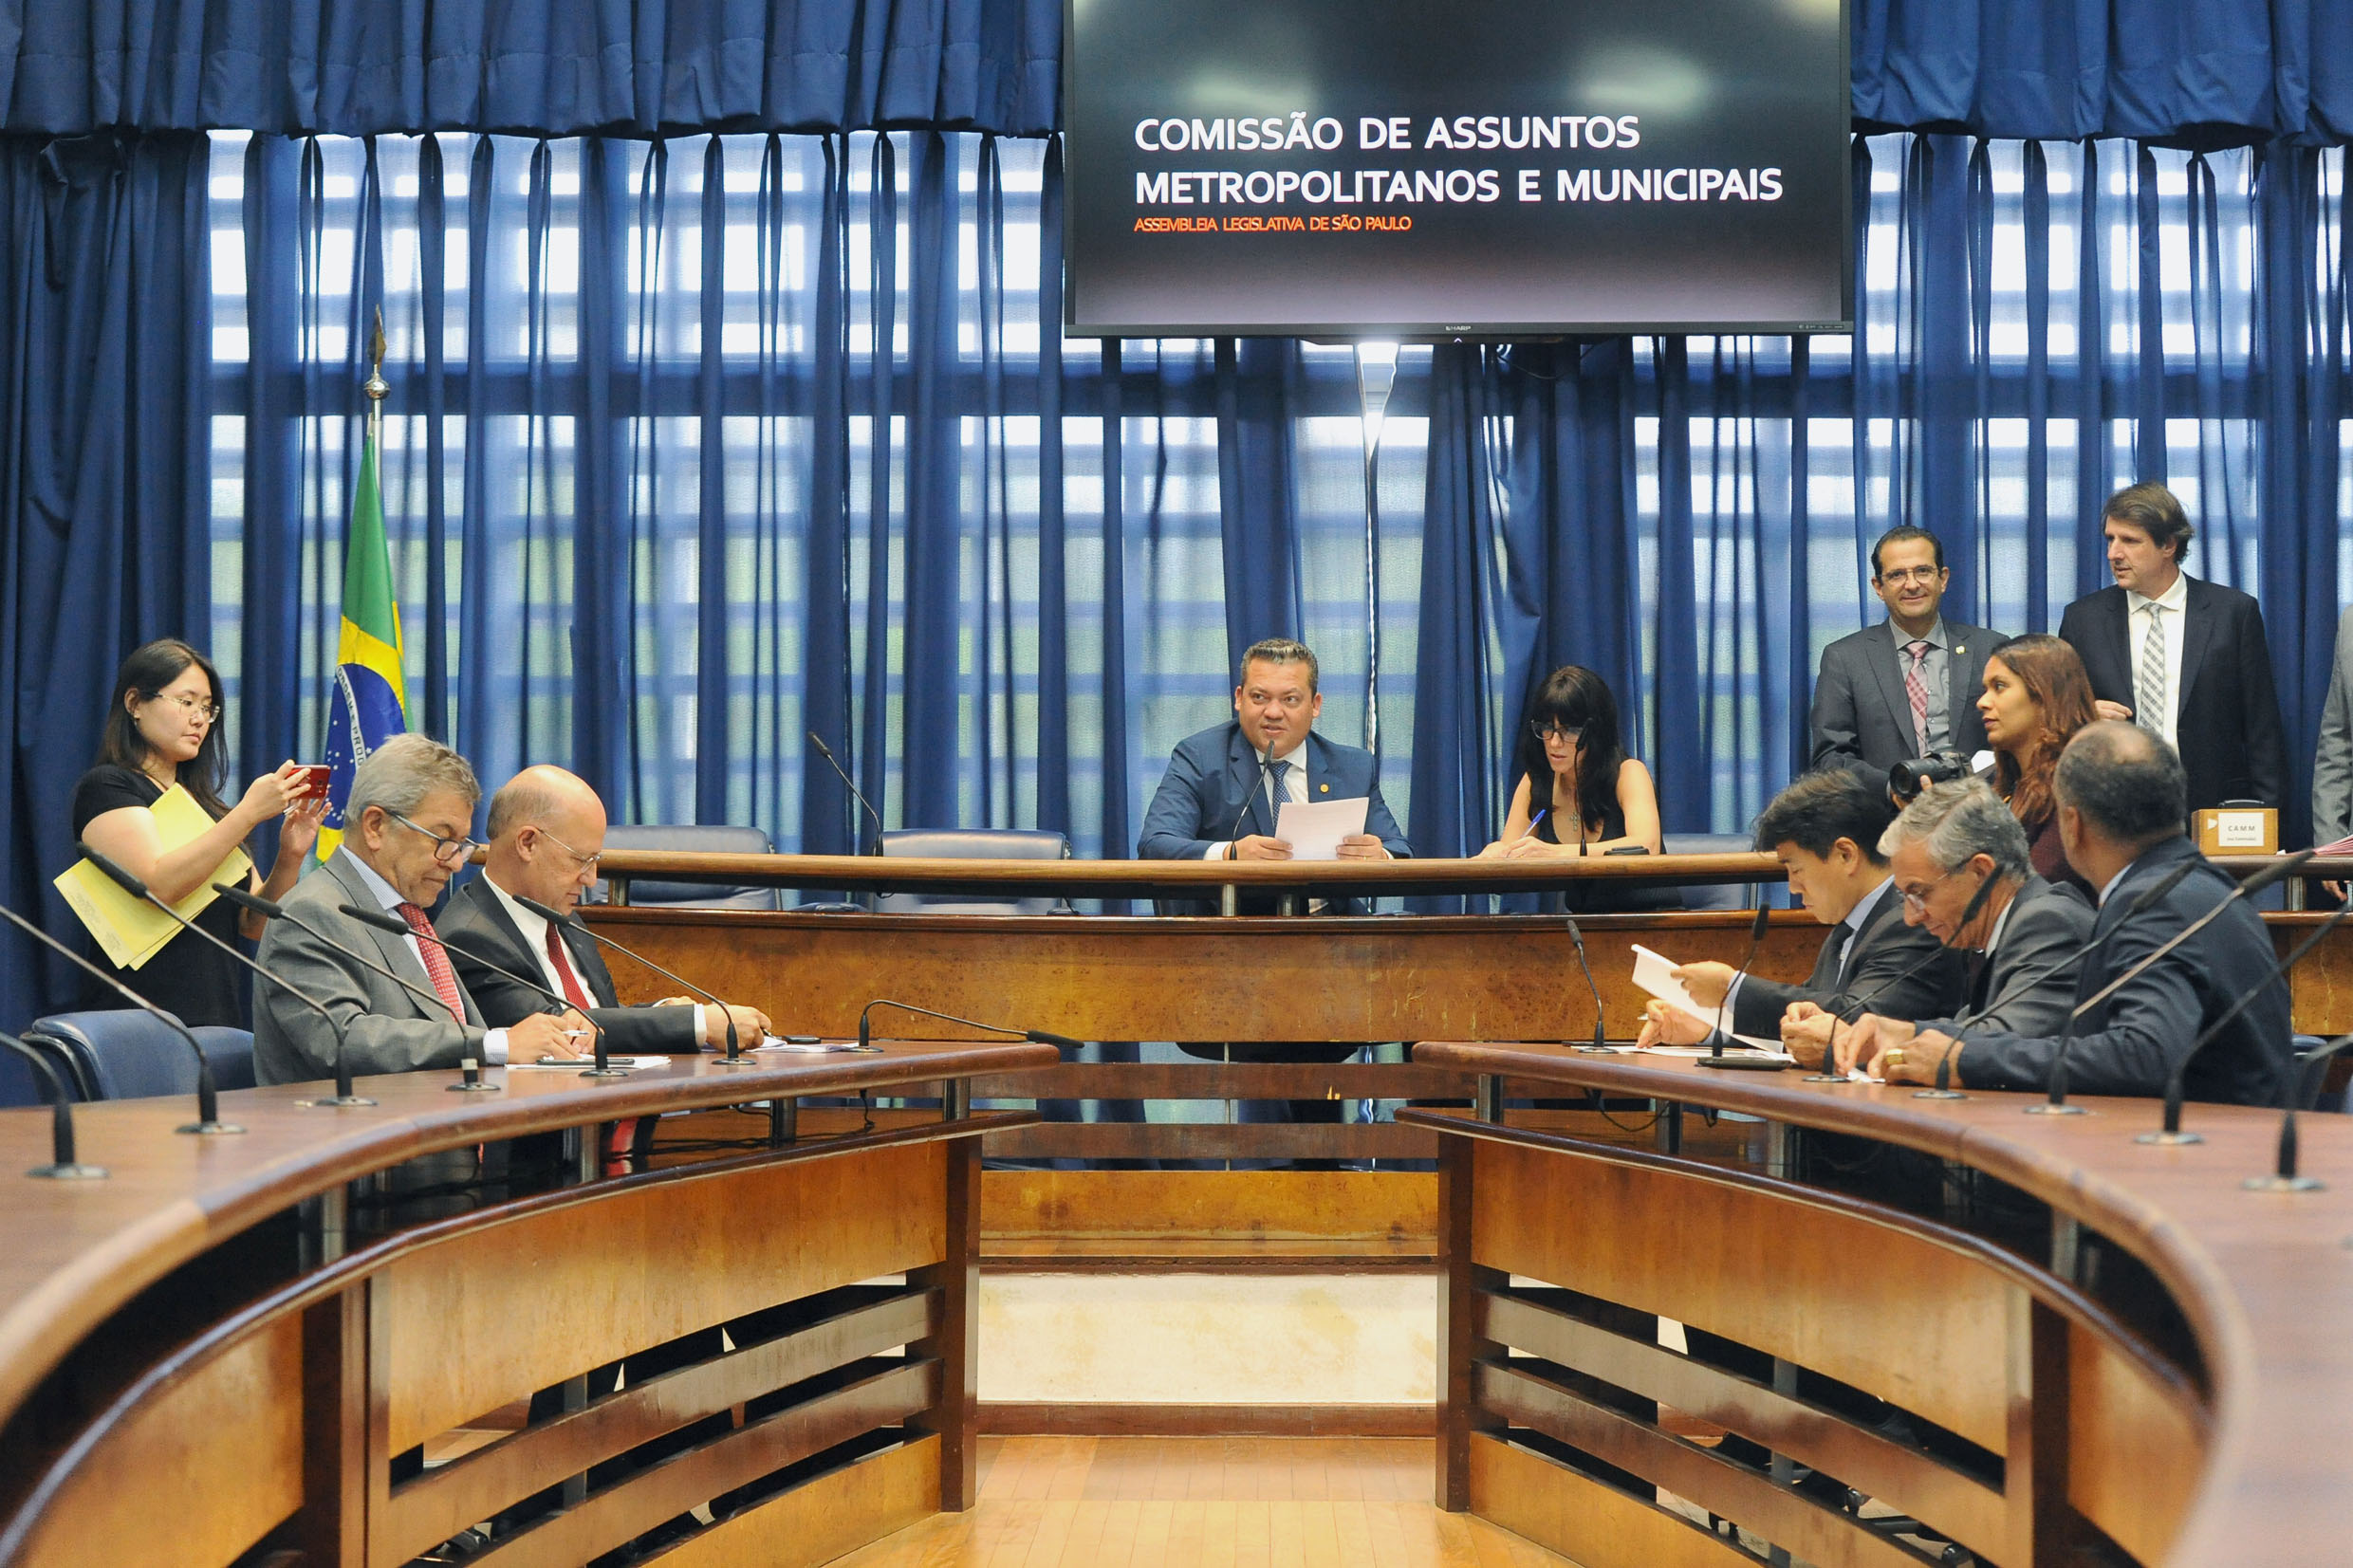 Paulo Correa Jr preside a comissão<a style='float:right' href='https://www3.al.sp.gov.br/repositorio/noticia/N-12-2018/fg228265.jpg' target=_blank><img src='/_img/material-file-download-white.png' width='14px' alt='Clique para baixar a imagem'></a>